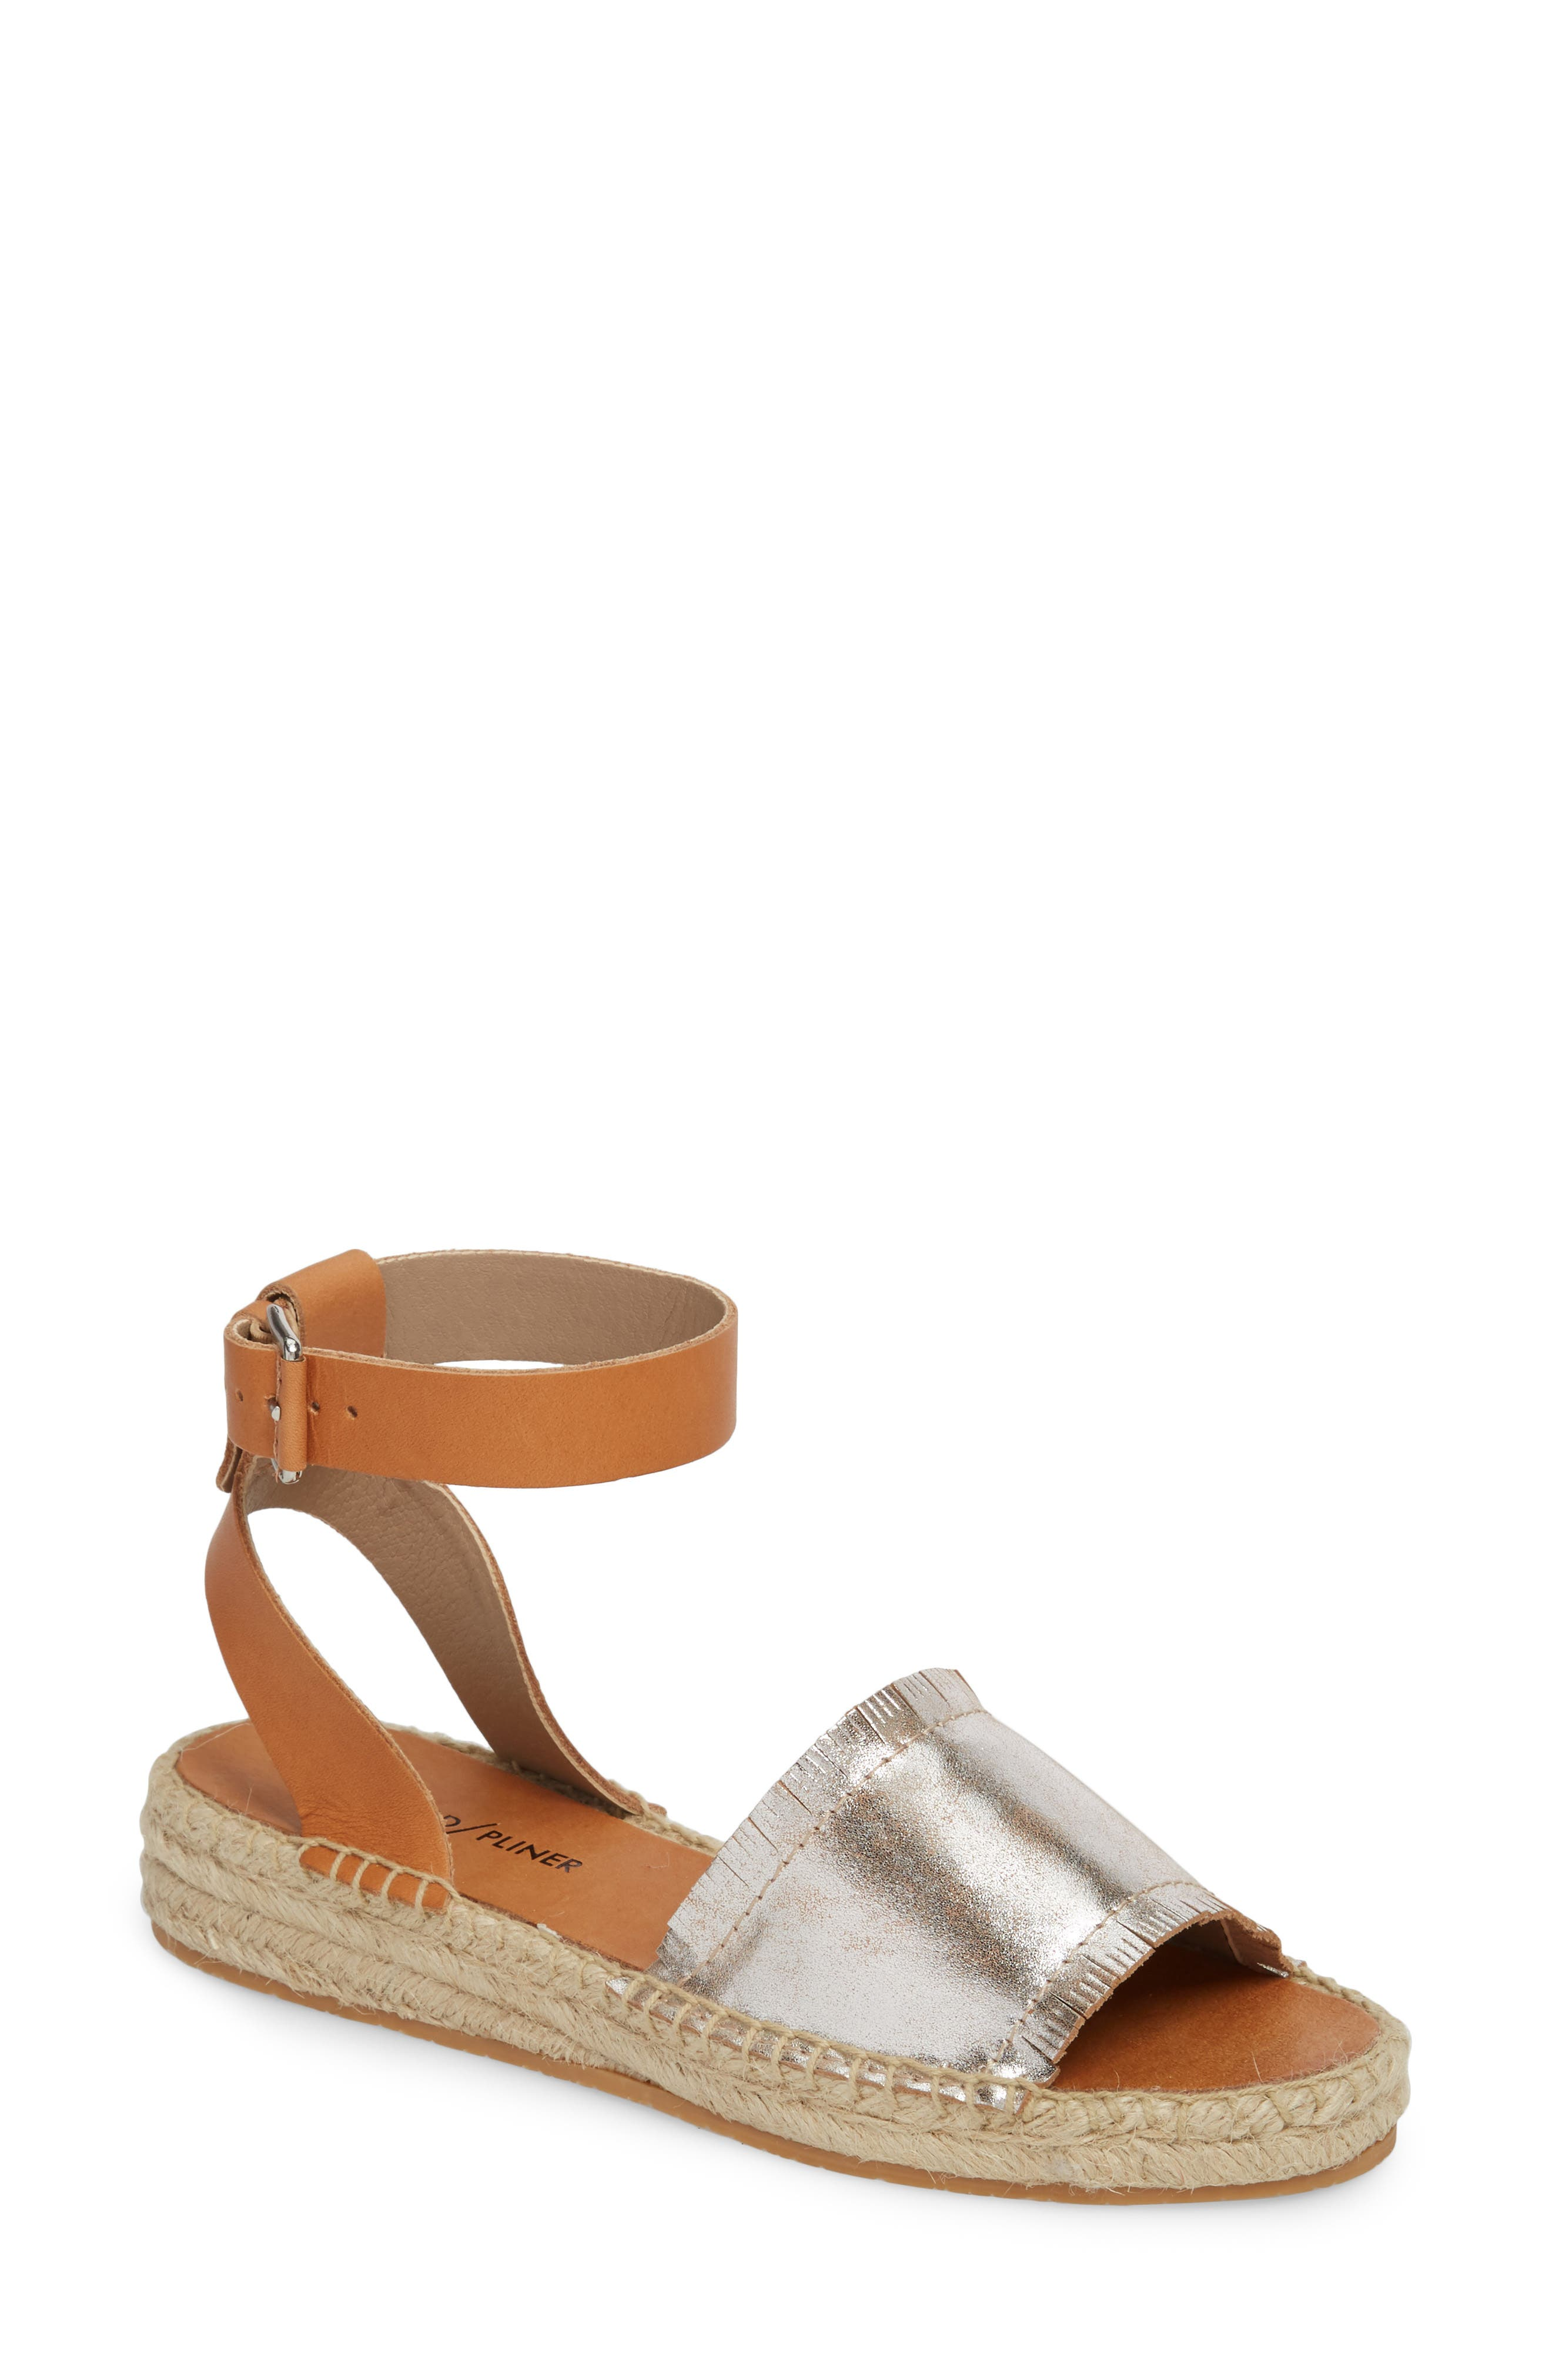 Alternate Image 1 Selected - Donald Pliner Rowen Espadrille Sandal (Women)